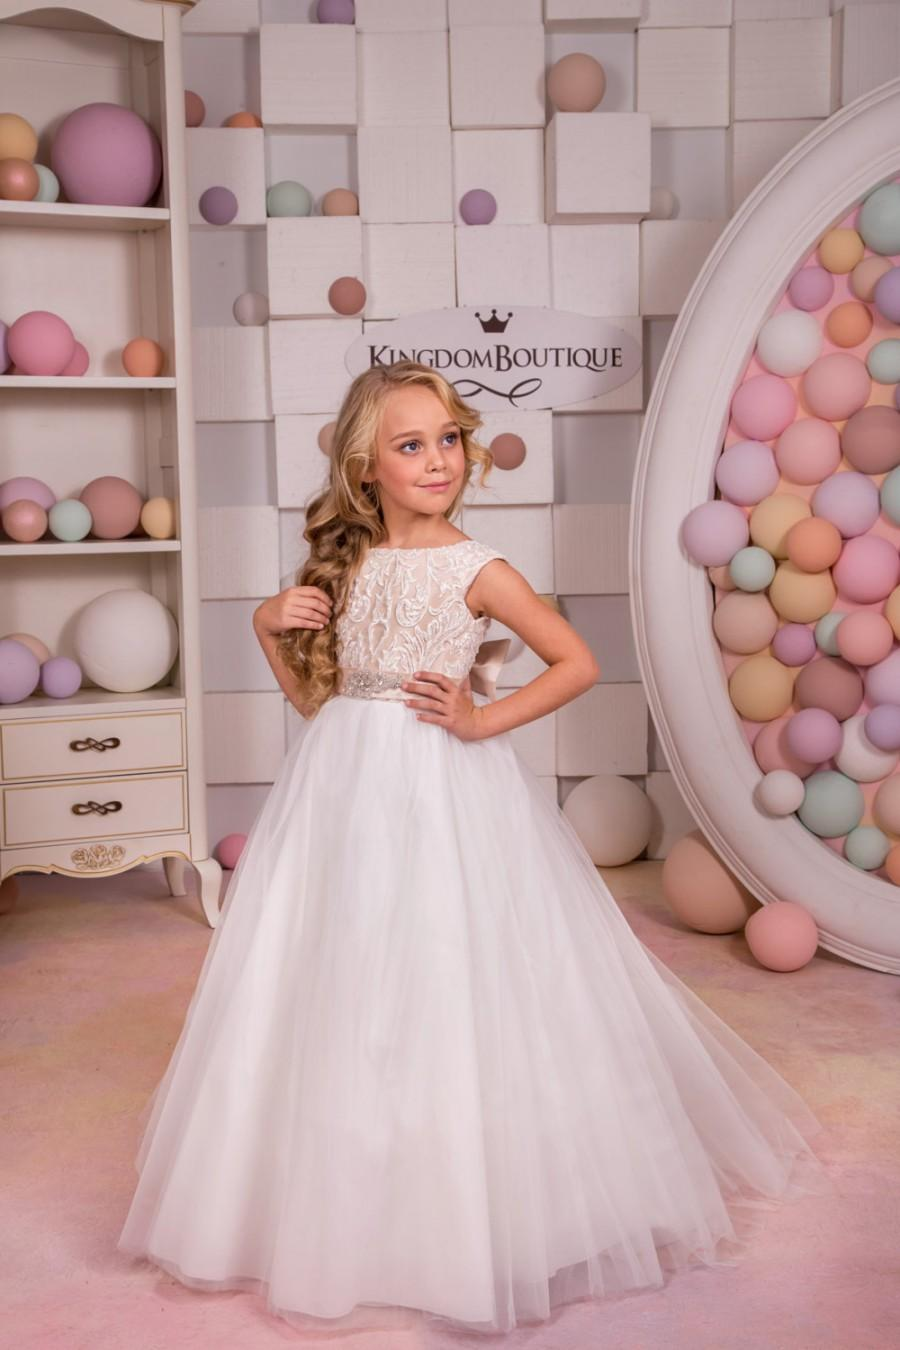 Wedding - Cappuccino and Ivory Flower Girl Dress - Holiday Bridesmaid Birthday Wedding Party Ivory and Cappuccino Flower Girl Tulle Dress